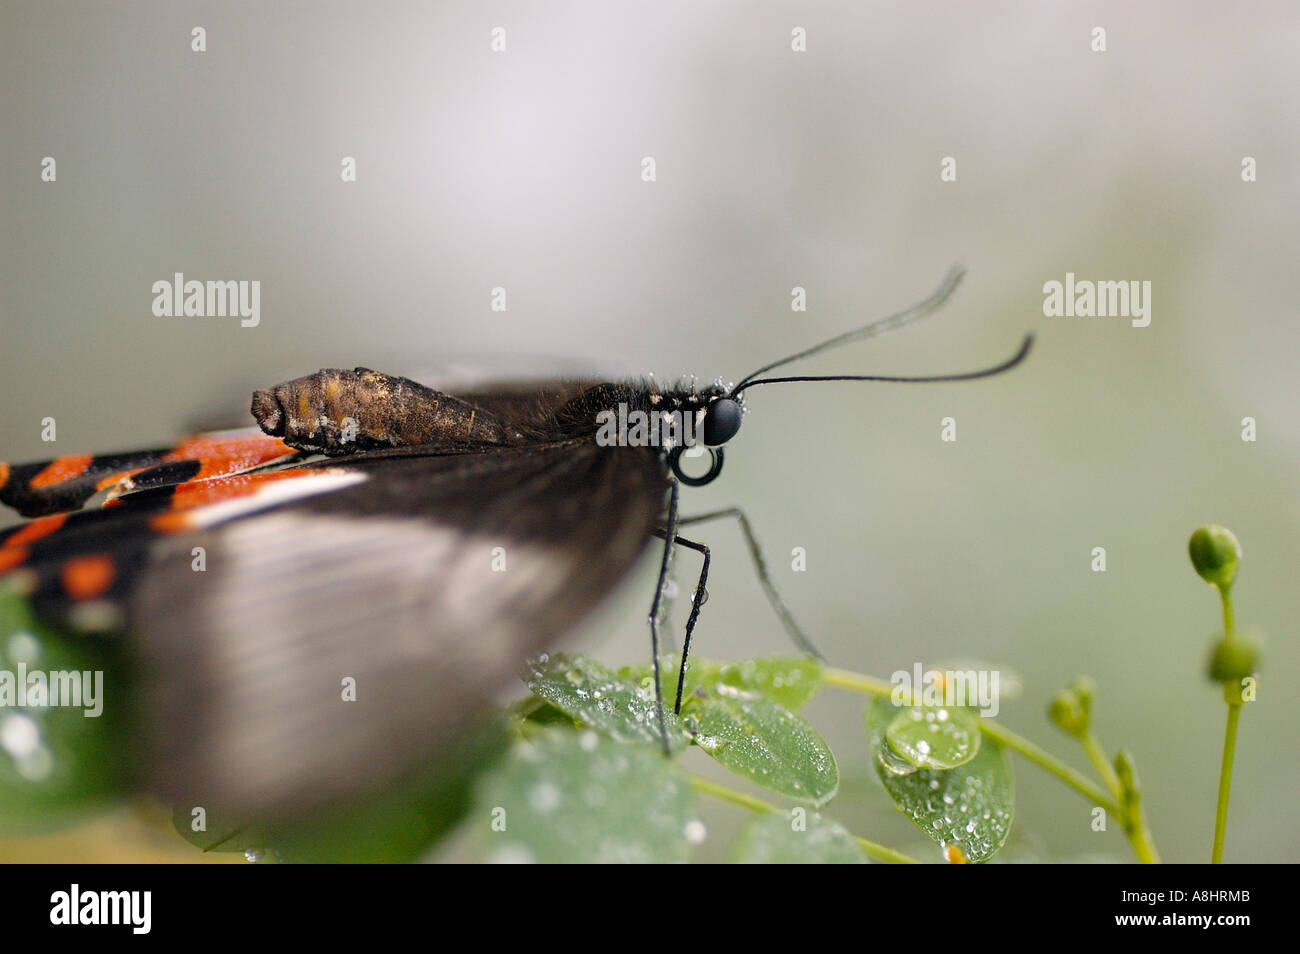 Swallowtail with fluttering wings, Swallowtail family, Papilio rumanzovia, Papilionidae - Stock Image